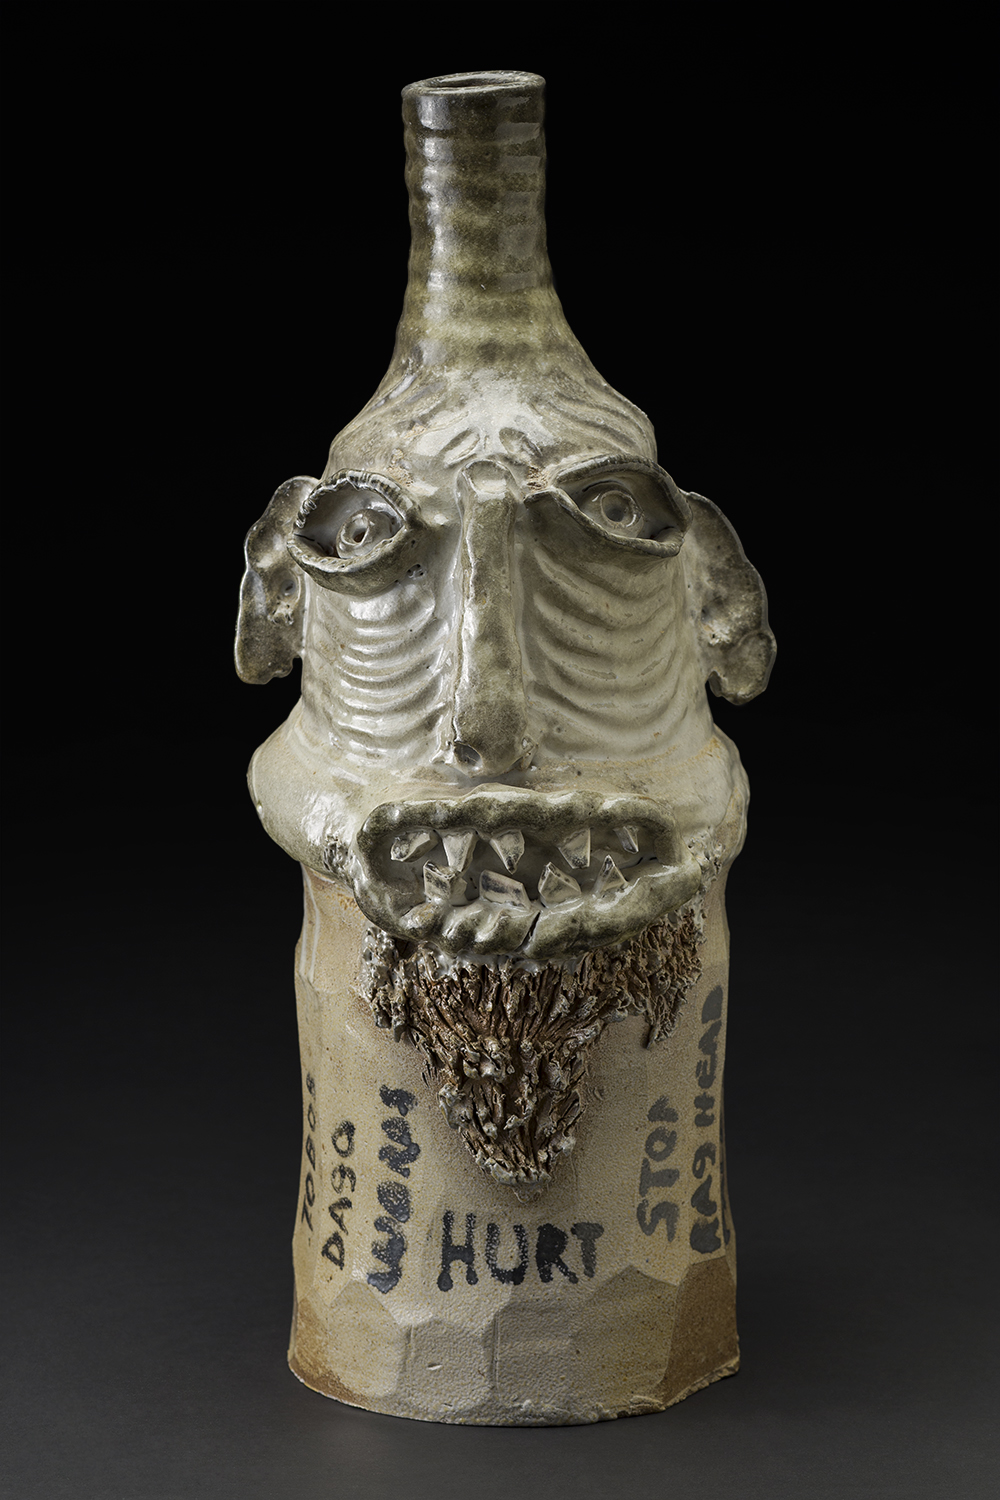 Jim McDowell  A Righteous Judge  , 2011 Gas-fired clay with white shino glaze, words written with black stain prior to firing 20.5 x 8.75 x 8.5 inches 52.1 x 22.2 x 21.6 cm JMcD 6